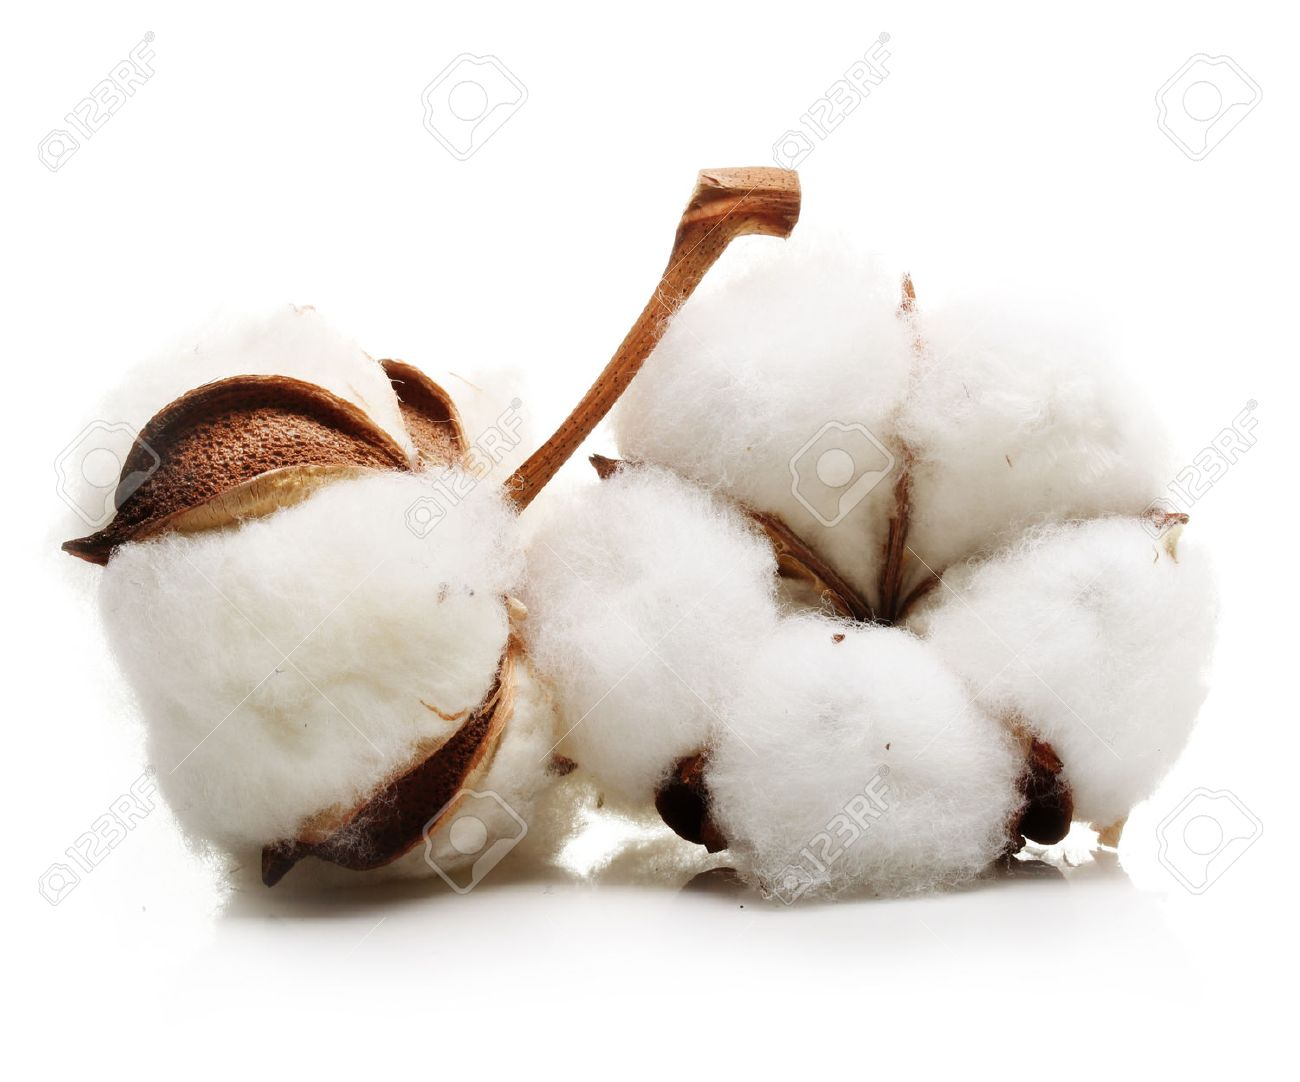 Cotton plant flower isolated on white background - 61544481